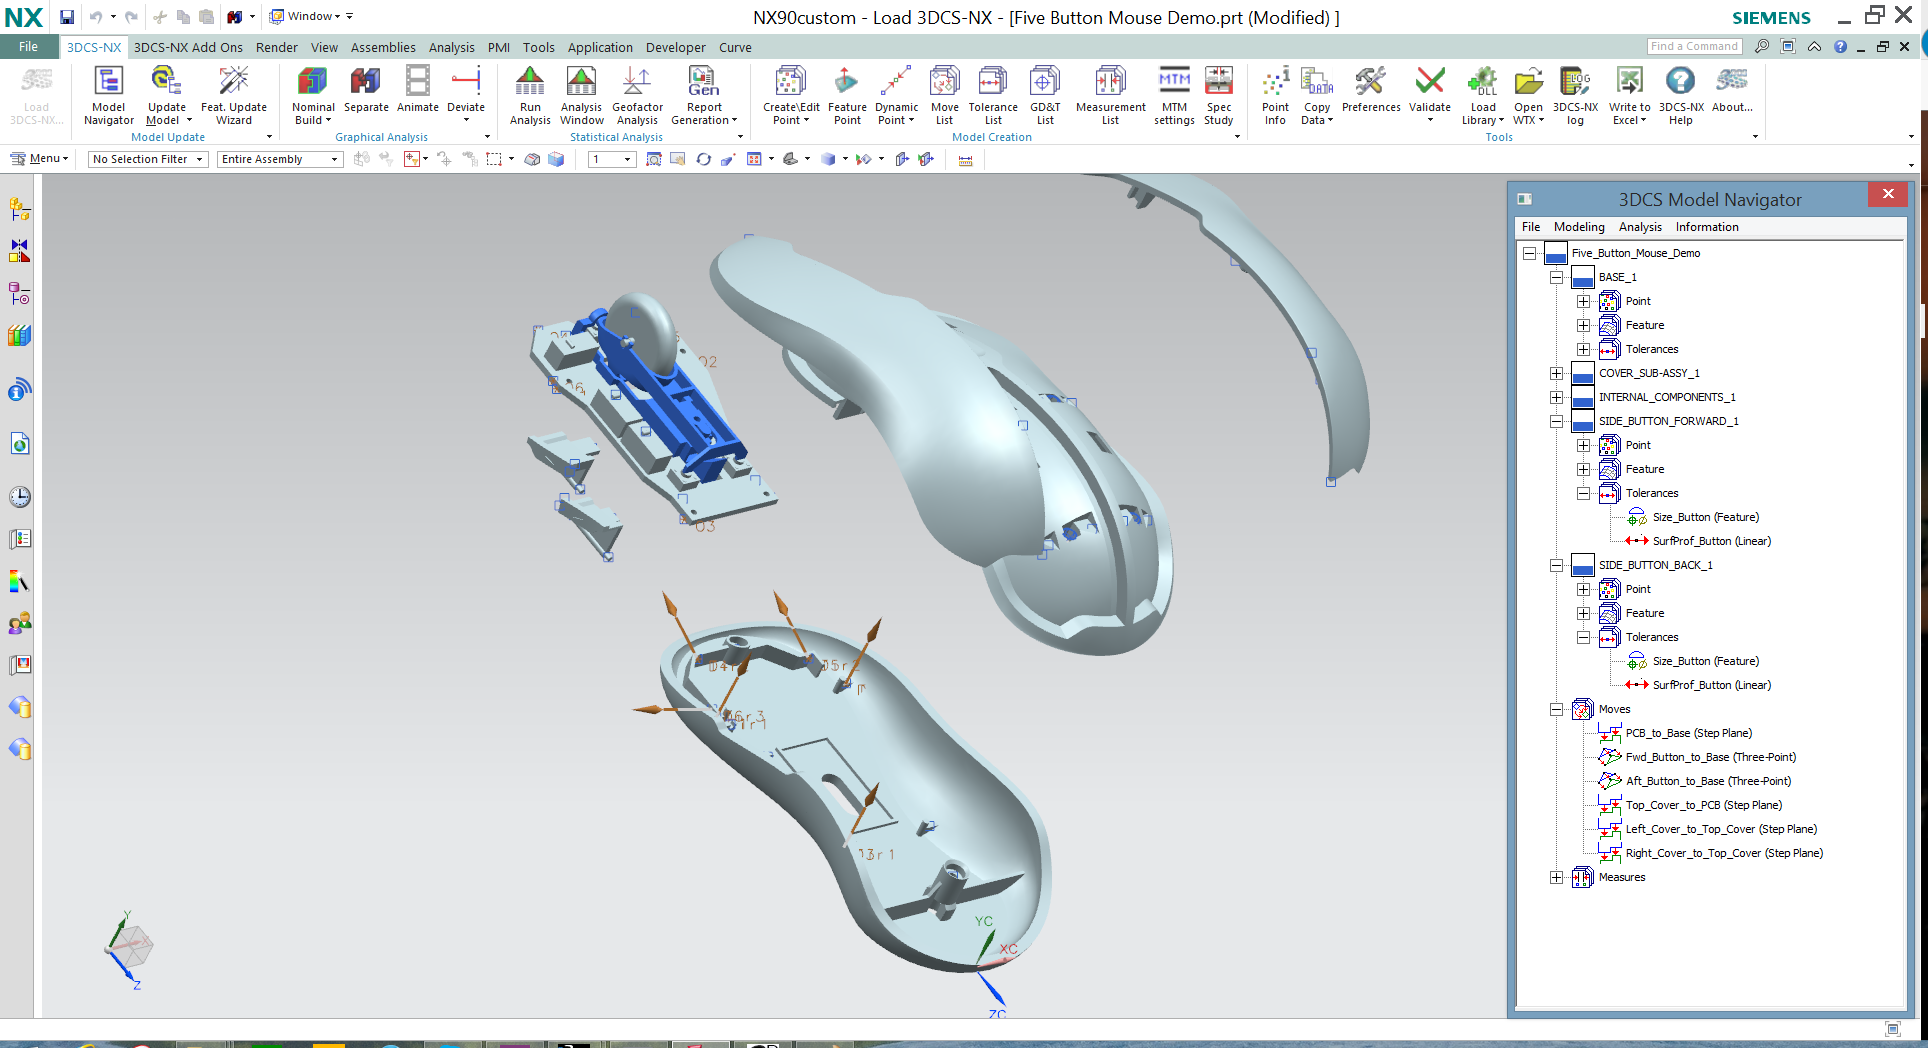 DCS Announces New Siemens NX Integration at SAE 2016 World Congress and Exhibition